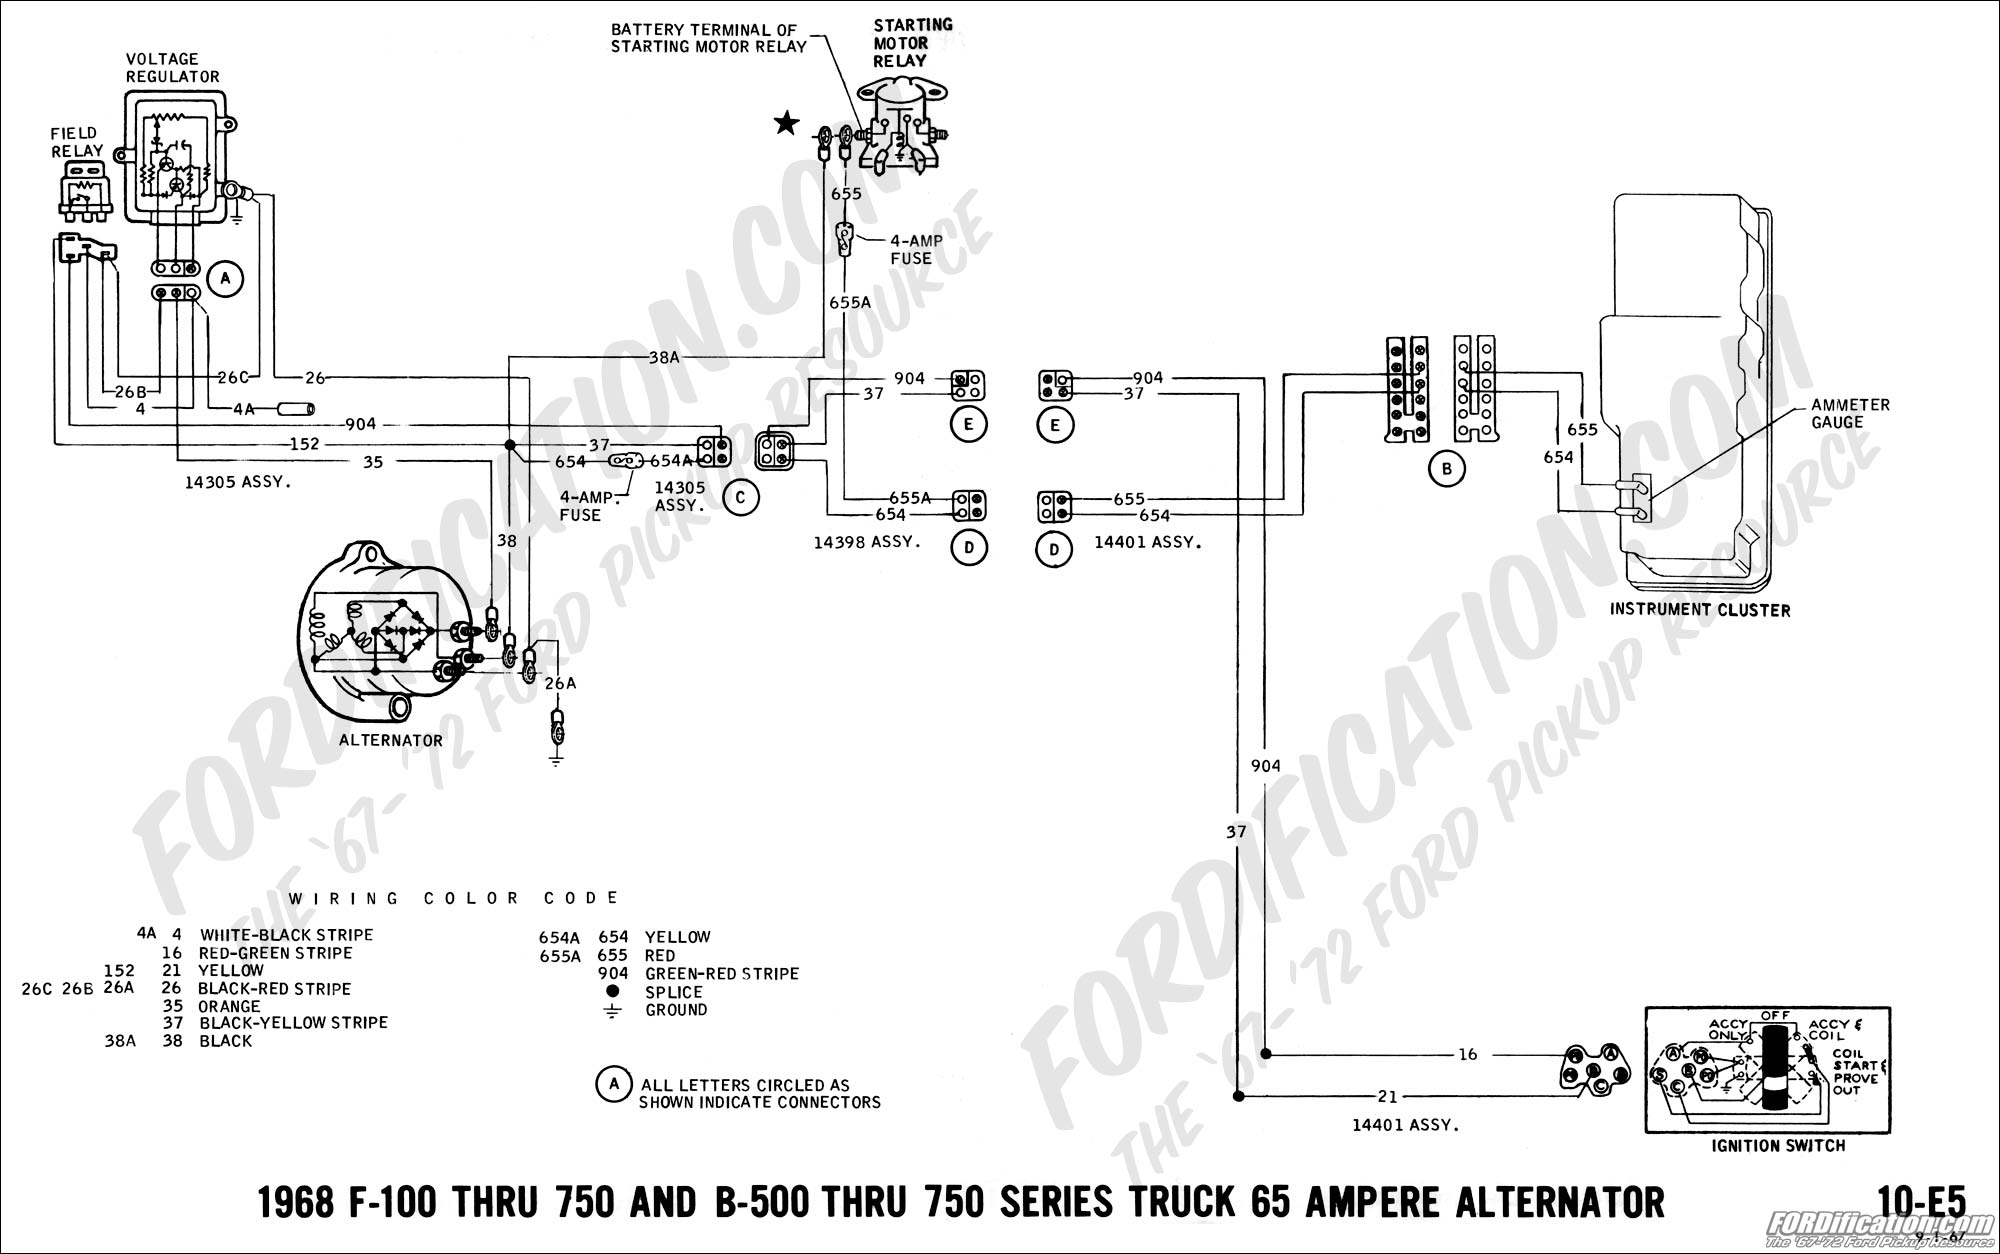 ford turn signal switch wiring diagram in addition 1984 ford f 250  ford truck technical drawings and schematics section h wiring ford turn signal switch wiring diagram in addition 1984 ford f 250